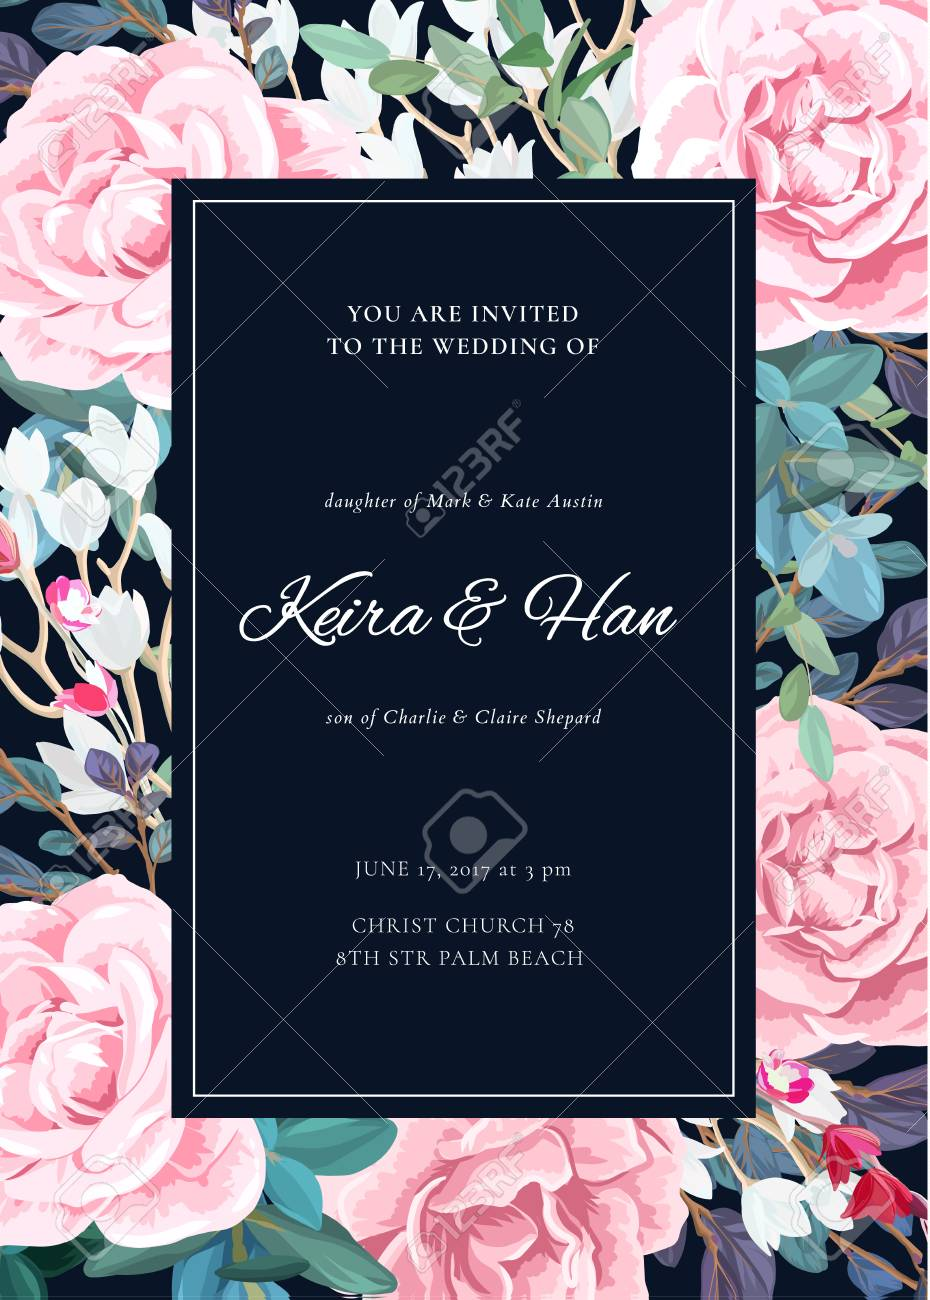 The Classic Design Of A Wedding Invitation With A Border Of Lowering